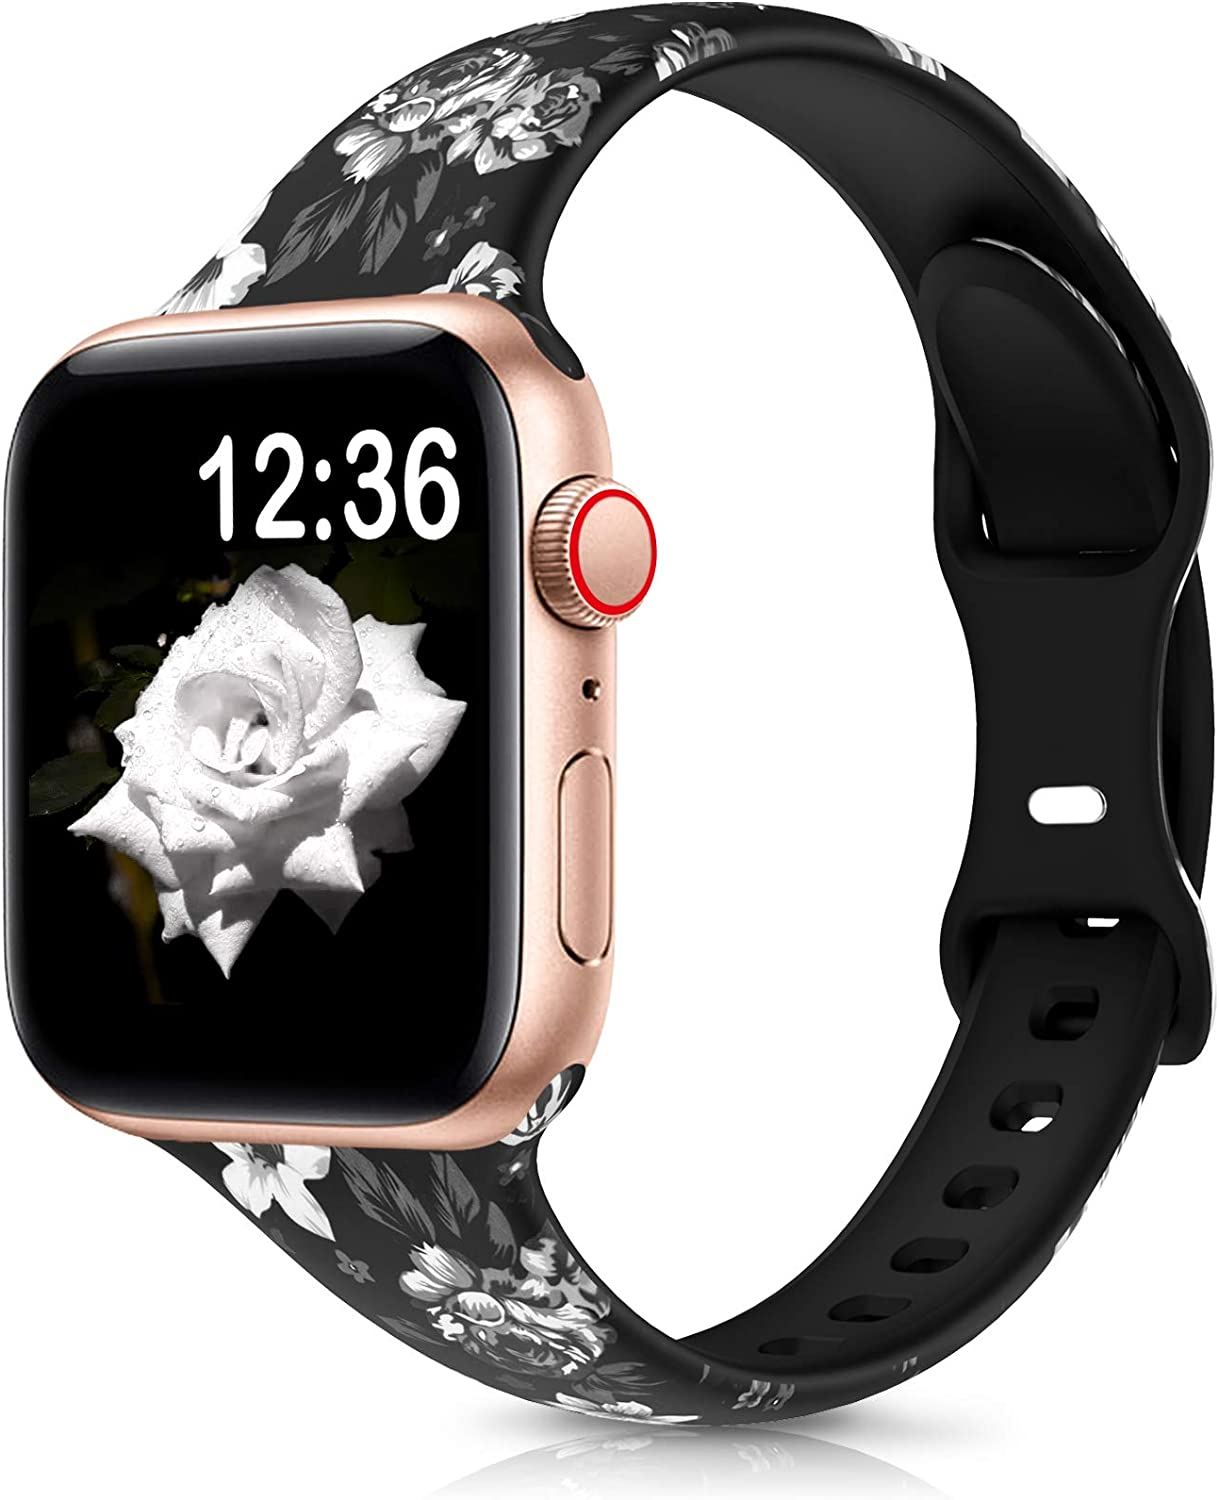 OHOTLOVE Floral Bands Compatible with Apple Watch 38mm 40mm 42mm 44mm for Women Men, Breathable Narrow Soft Fadeless Floral Silicone Slim Thin Replacement Wristband for iWatch SE & Series 6/5/4/3/2/1